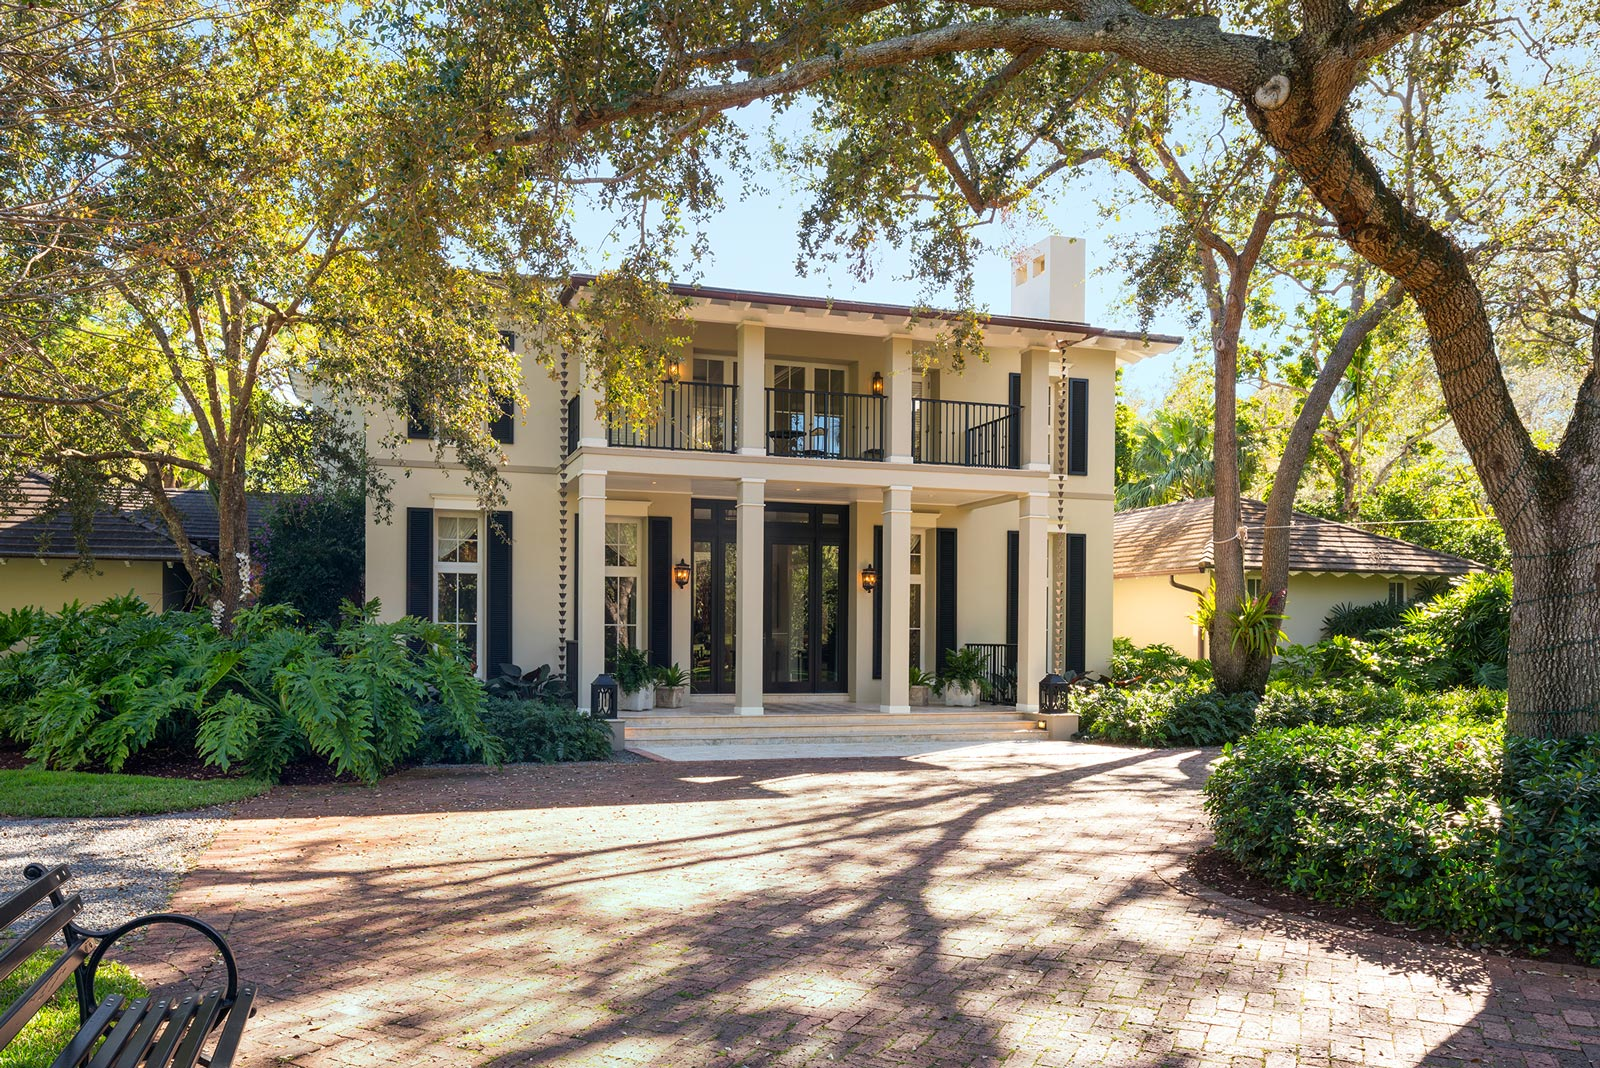 This southern style property flaunts elevated ceilings with pearly crown molding intended to enhance the two-story home's contemporary atmosphere. Lounging on the wrap-around, second-floor balcony will grant any viewer a breathtaking glimpse of the home's modern swimming court and spacious patio enveloped by towering palms trees.